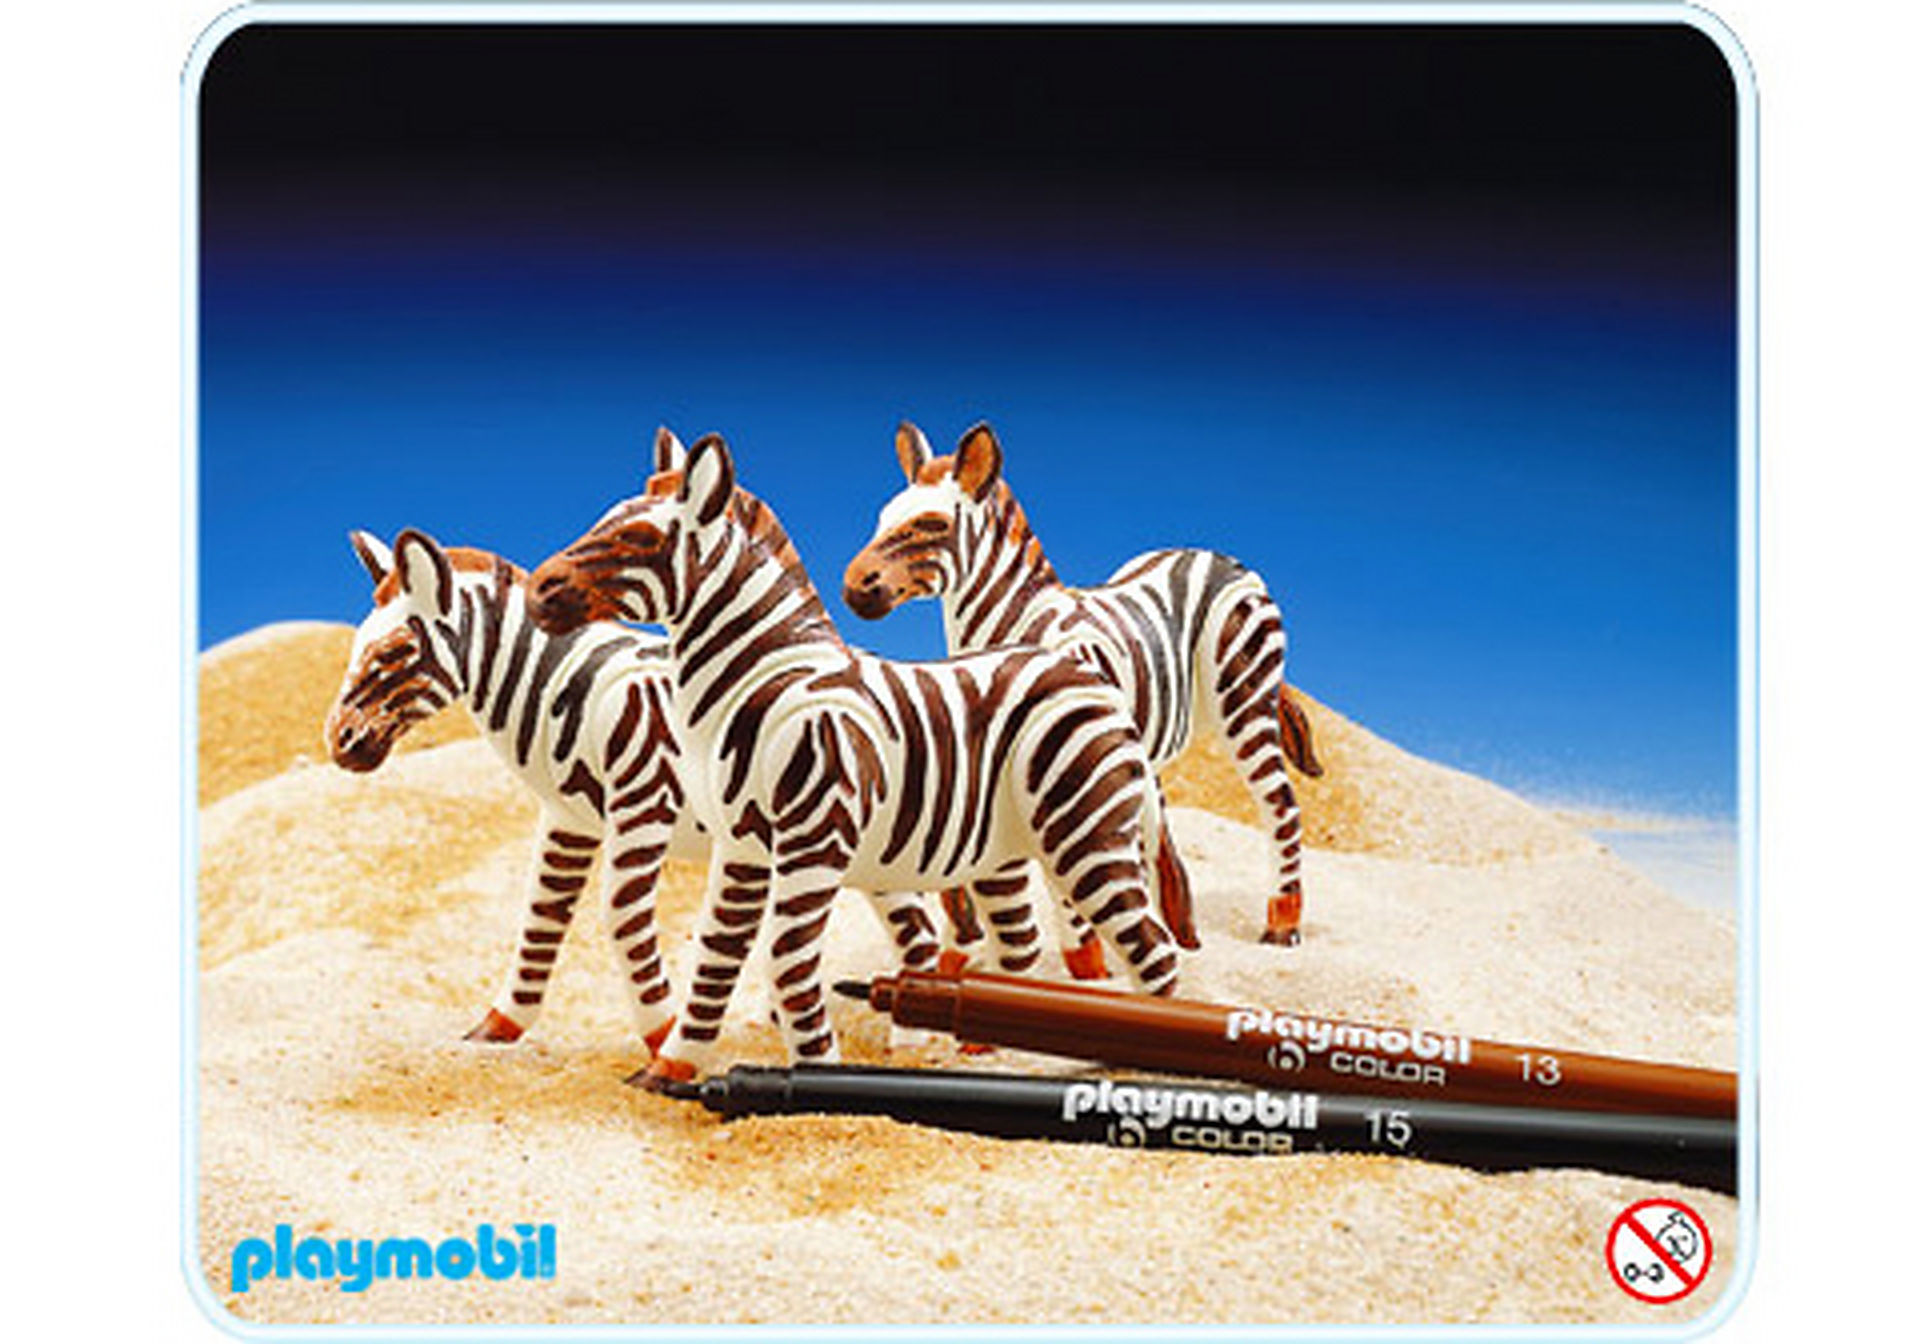 http://media.playmobil.com/i/playmobil/3673-A_product_detail/Color / 3 Zebras